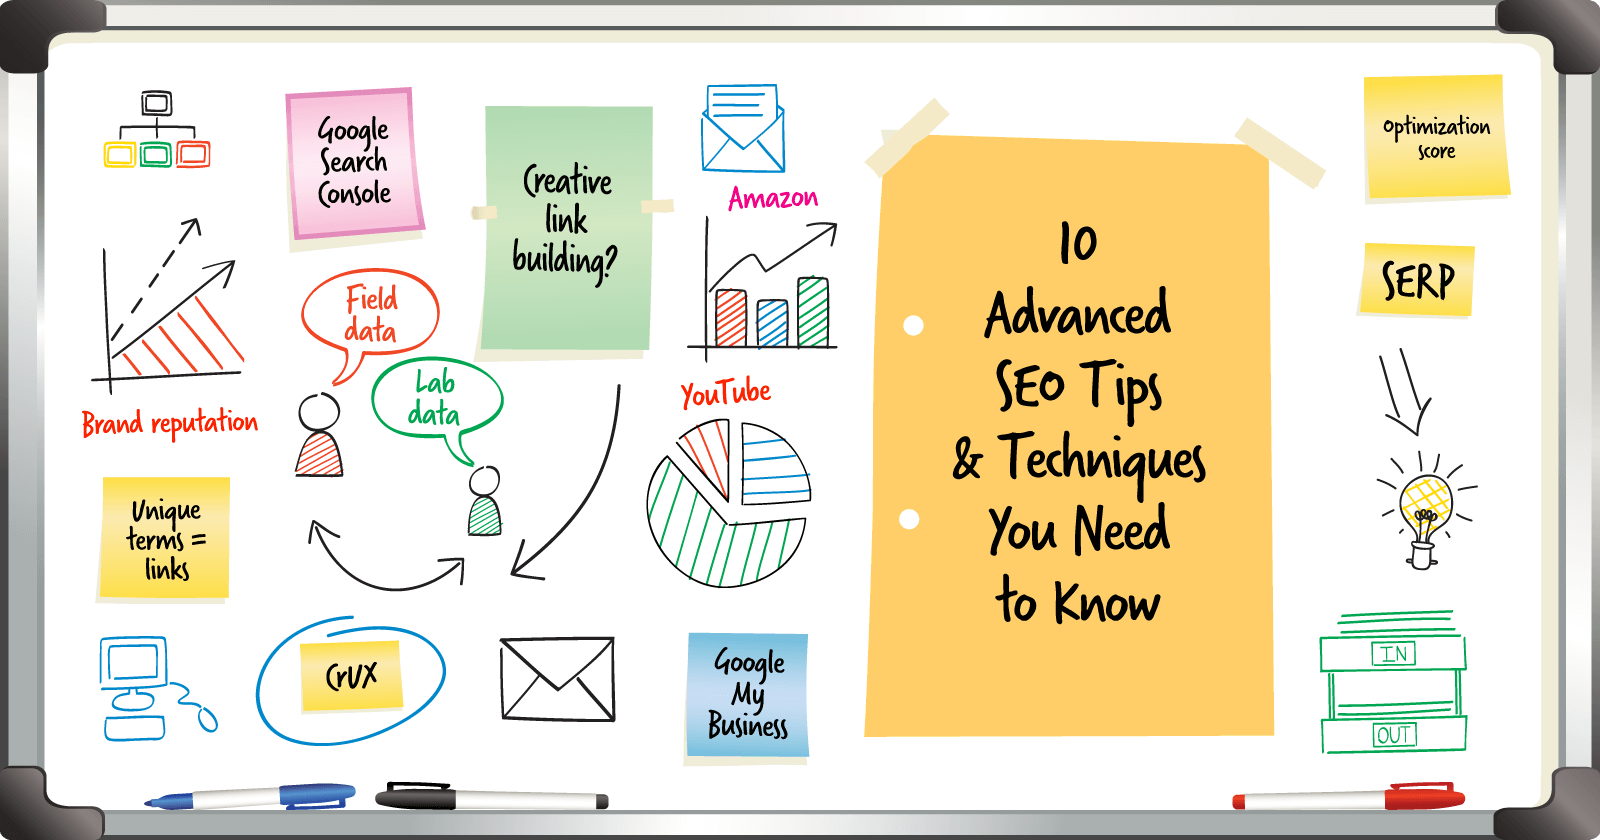 10 Advanced SEO Tips & Techniques You Need to Know by @ab80